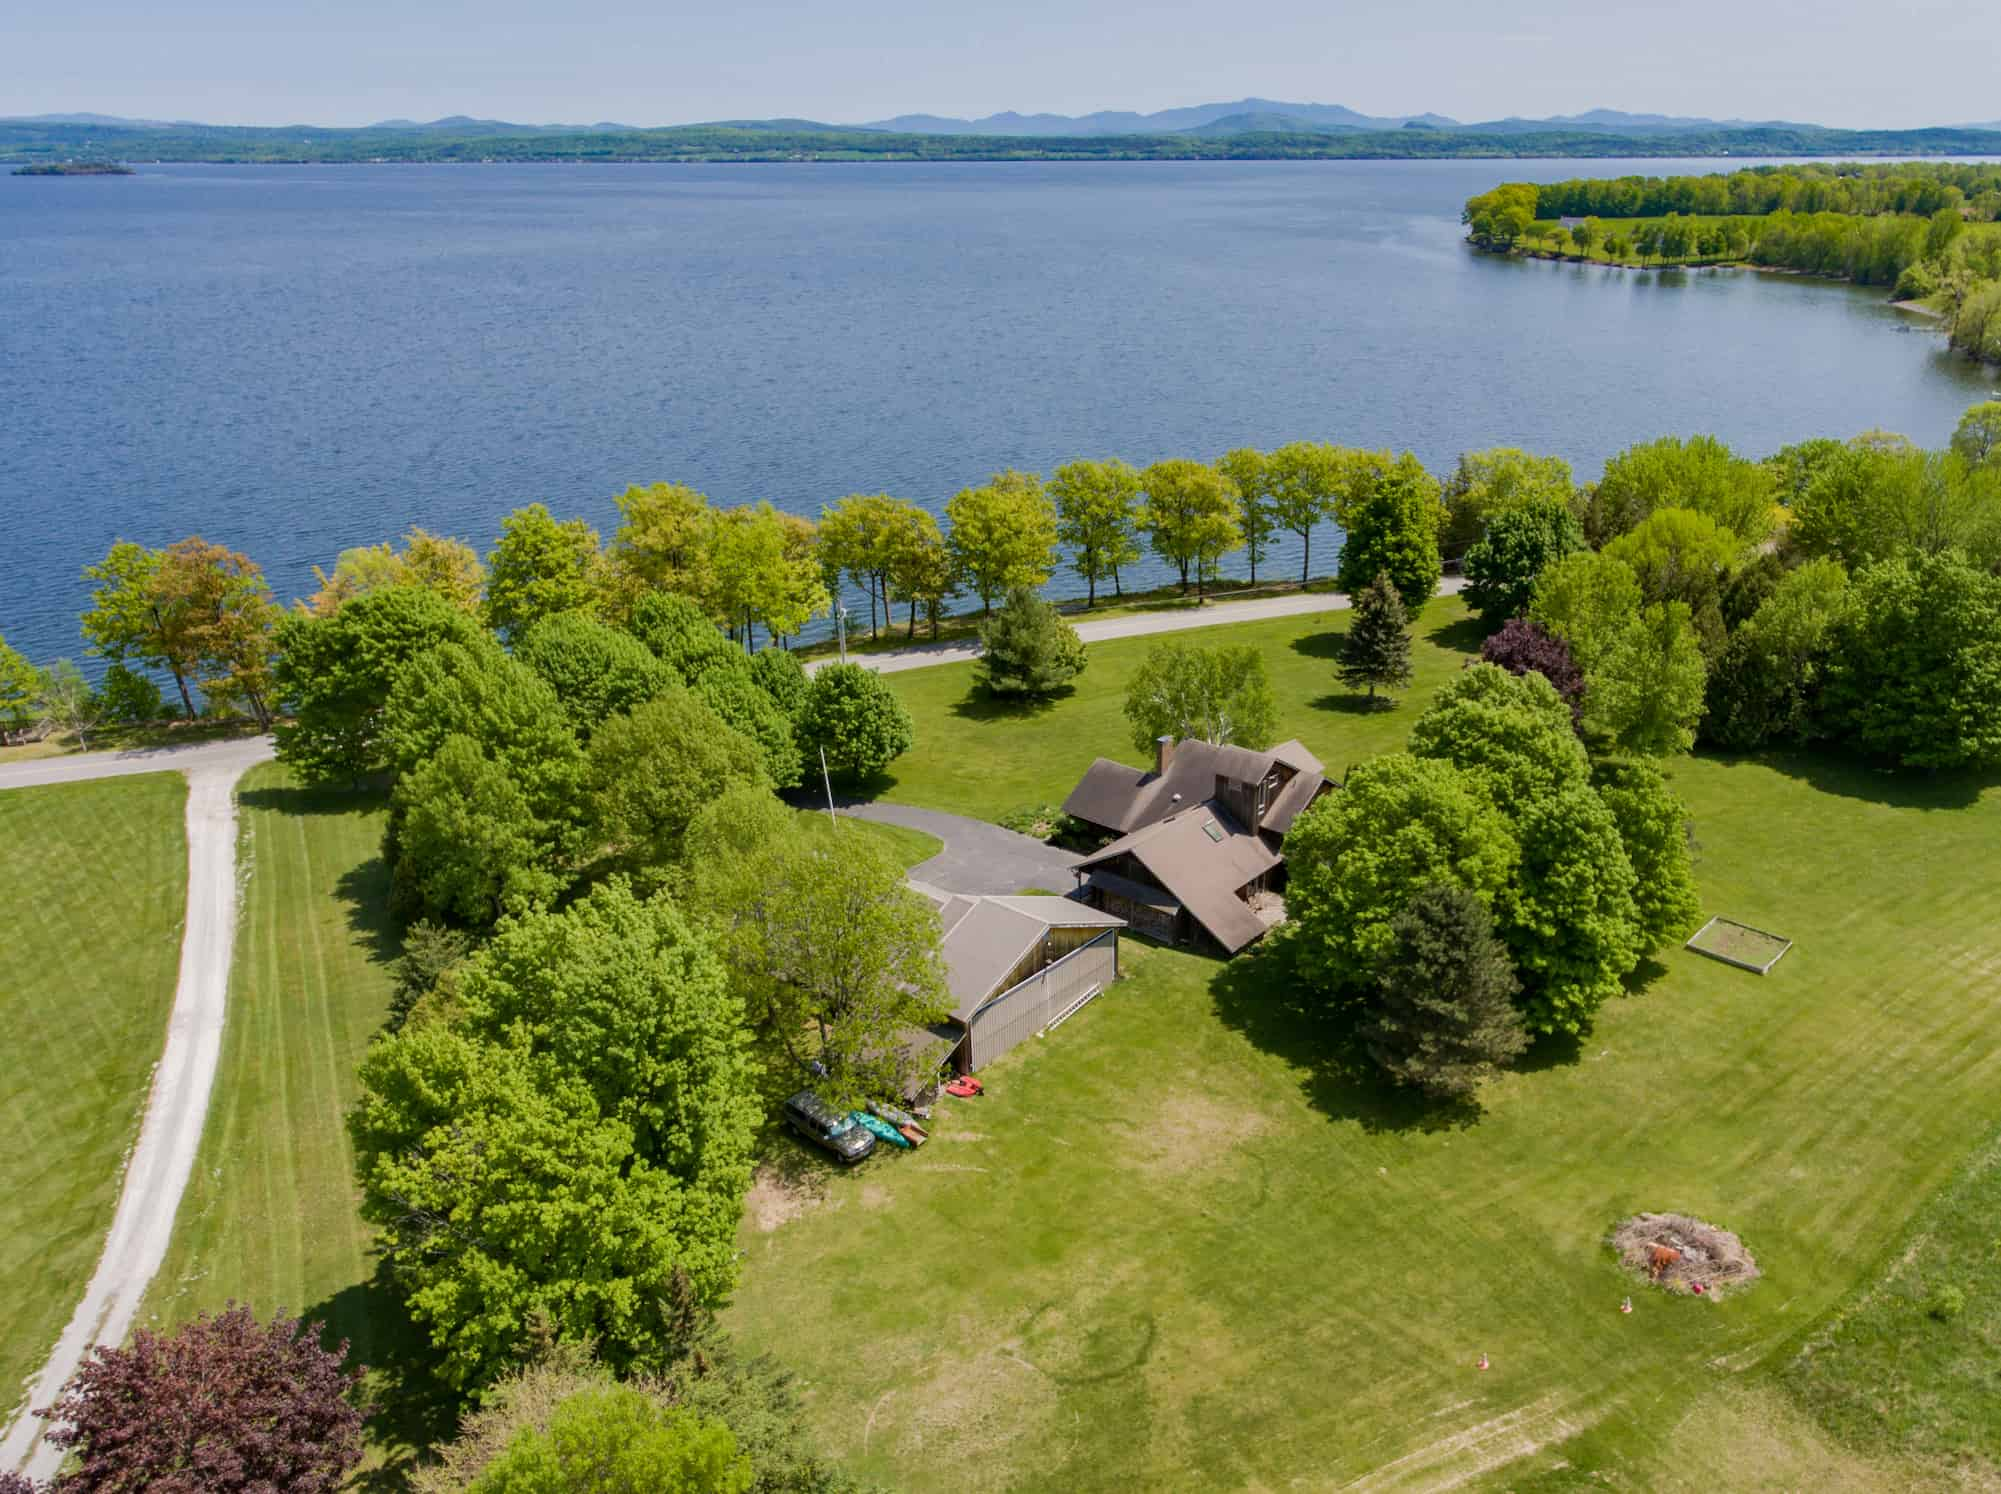 237 E Shore N Road, Grand Isle, VT 05458